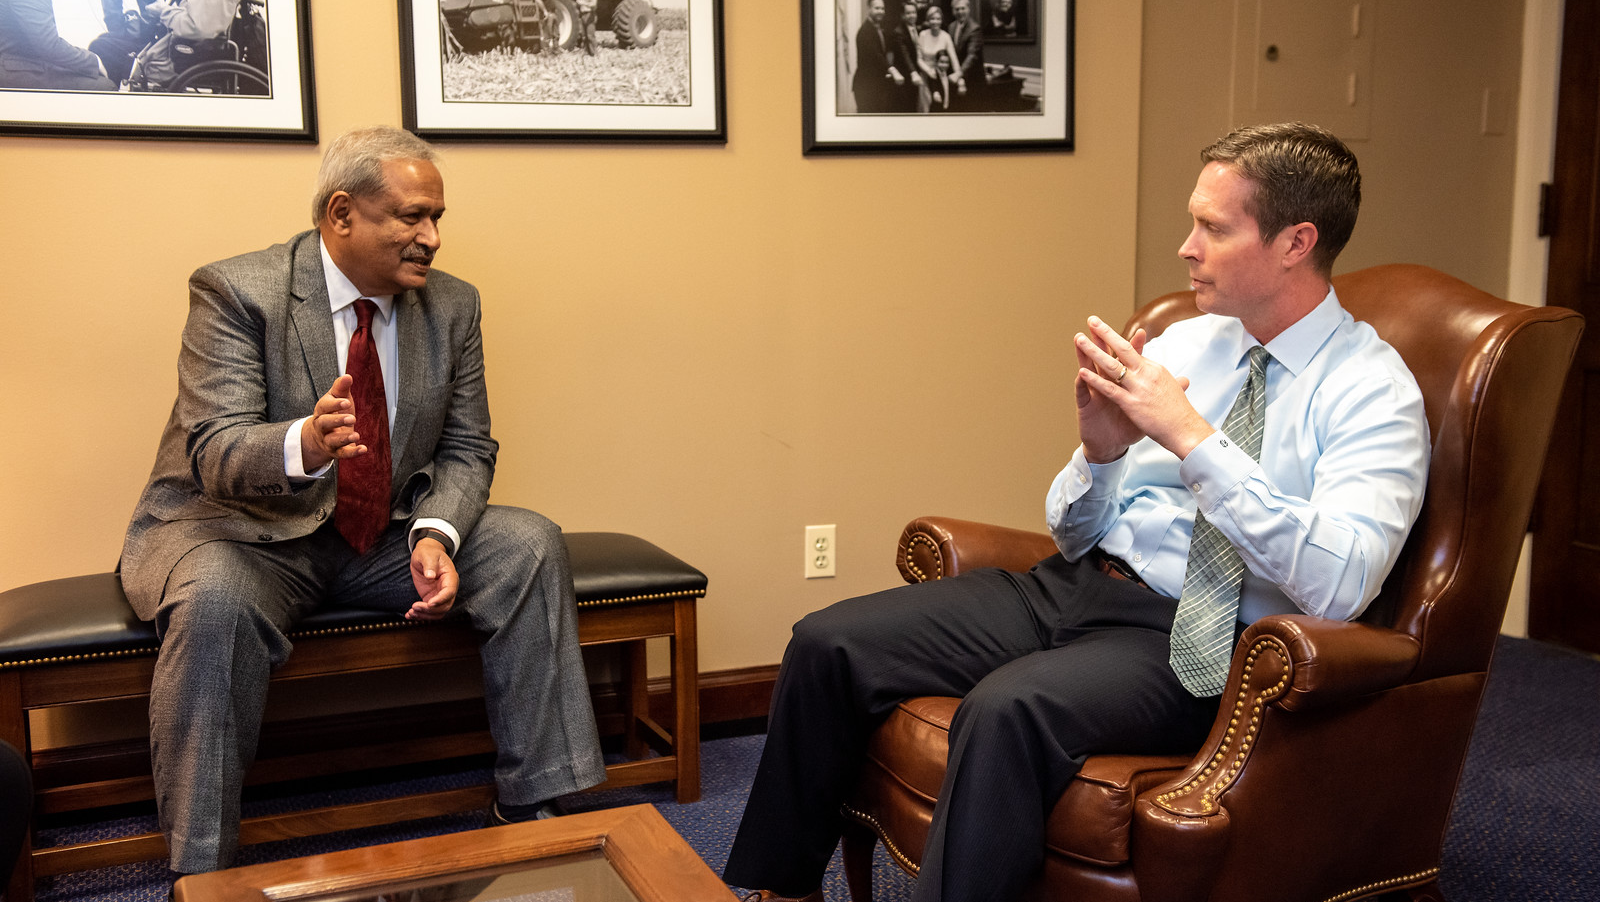 Global Membership Committee member Trichur Raju (left) meets with Rep. Rodney Davis (R-IL) to discuss brain science research supported by NIH and NSF.